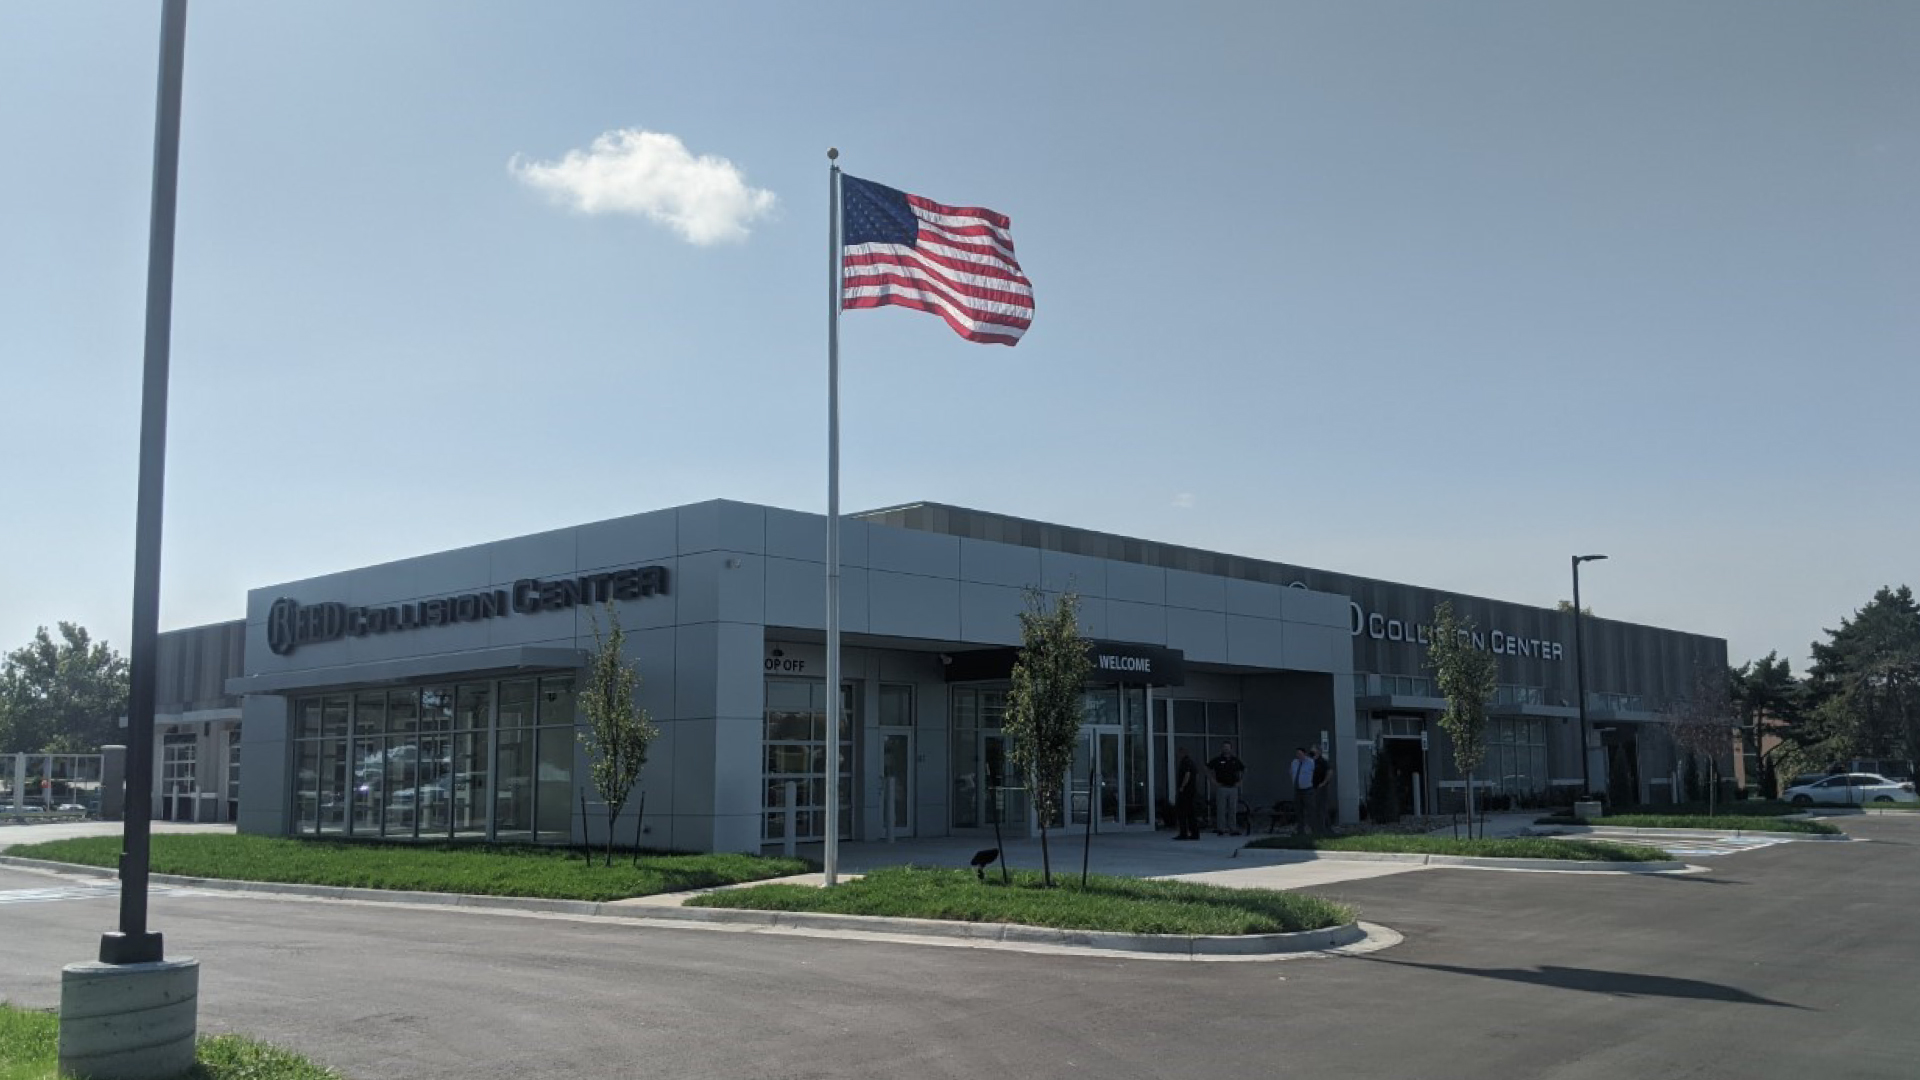 Reed Collision Center